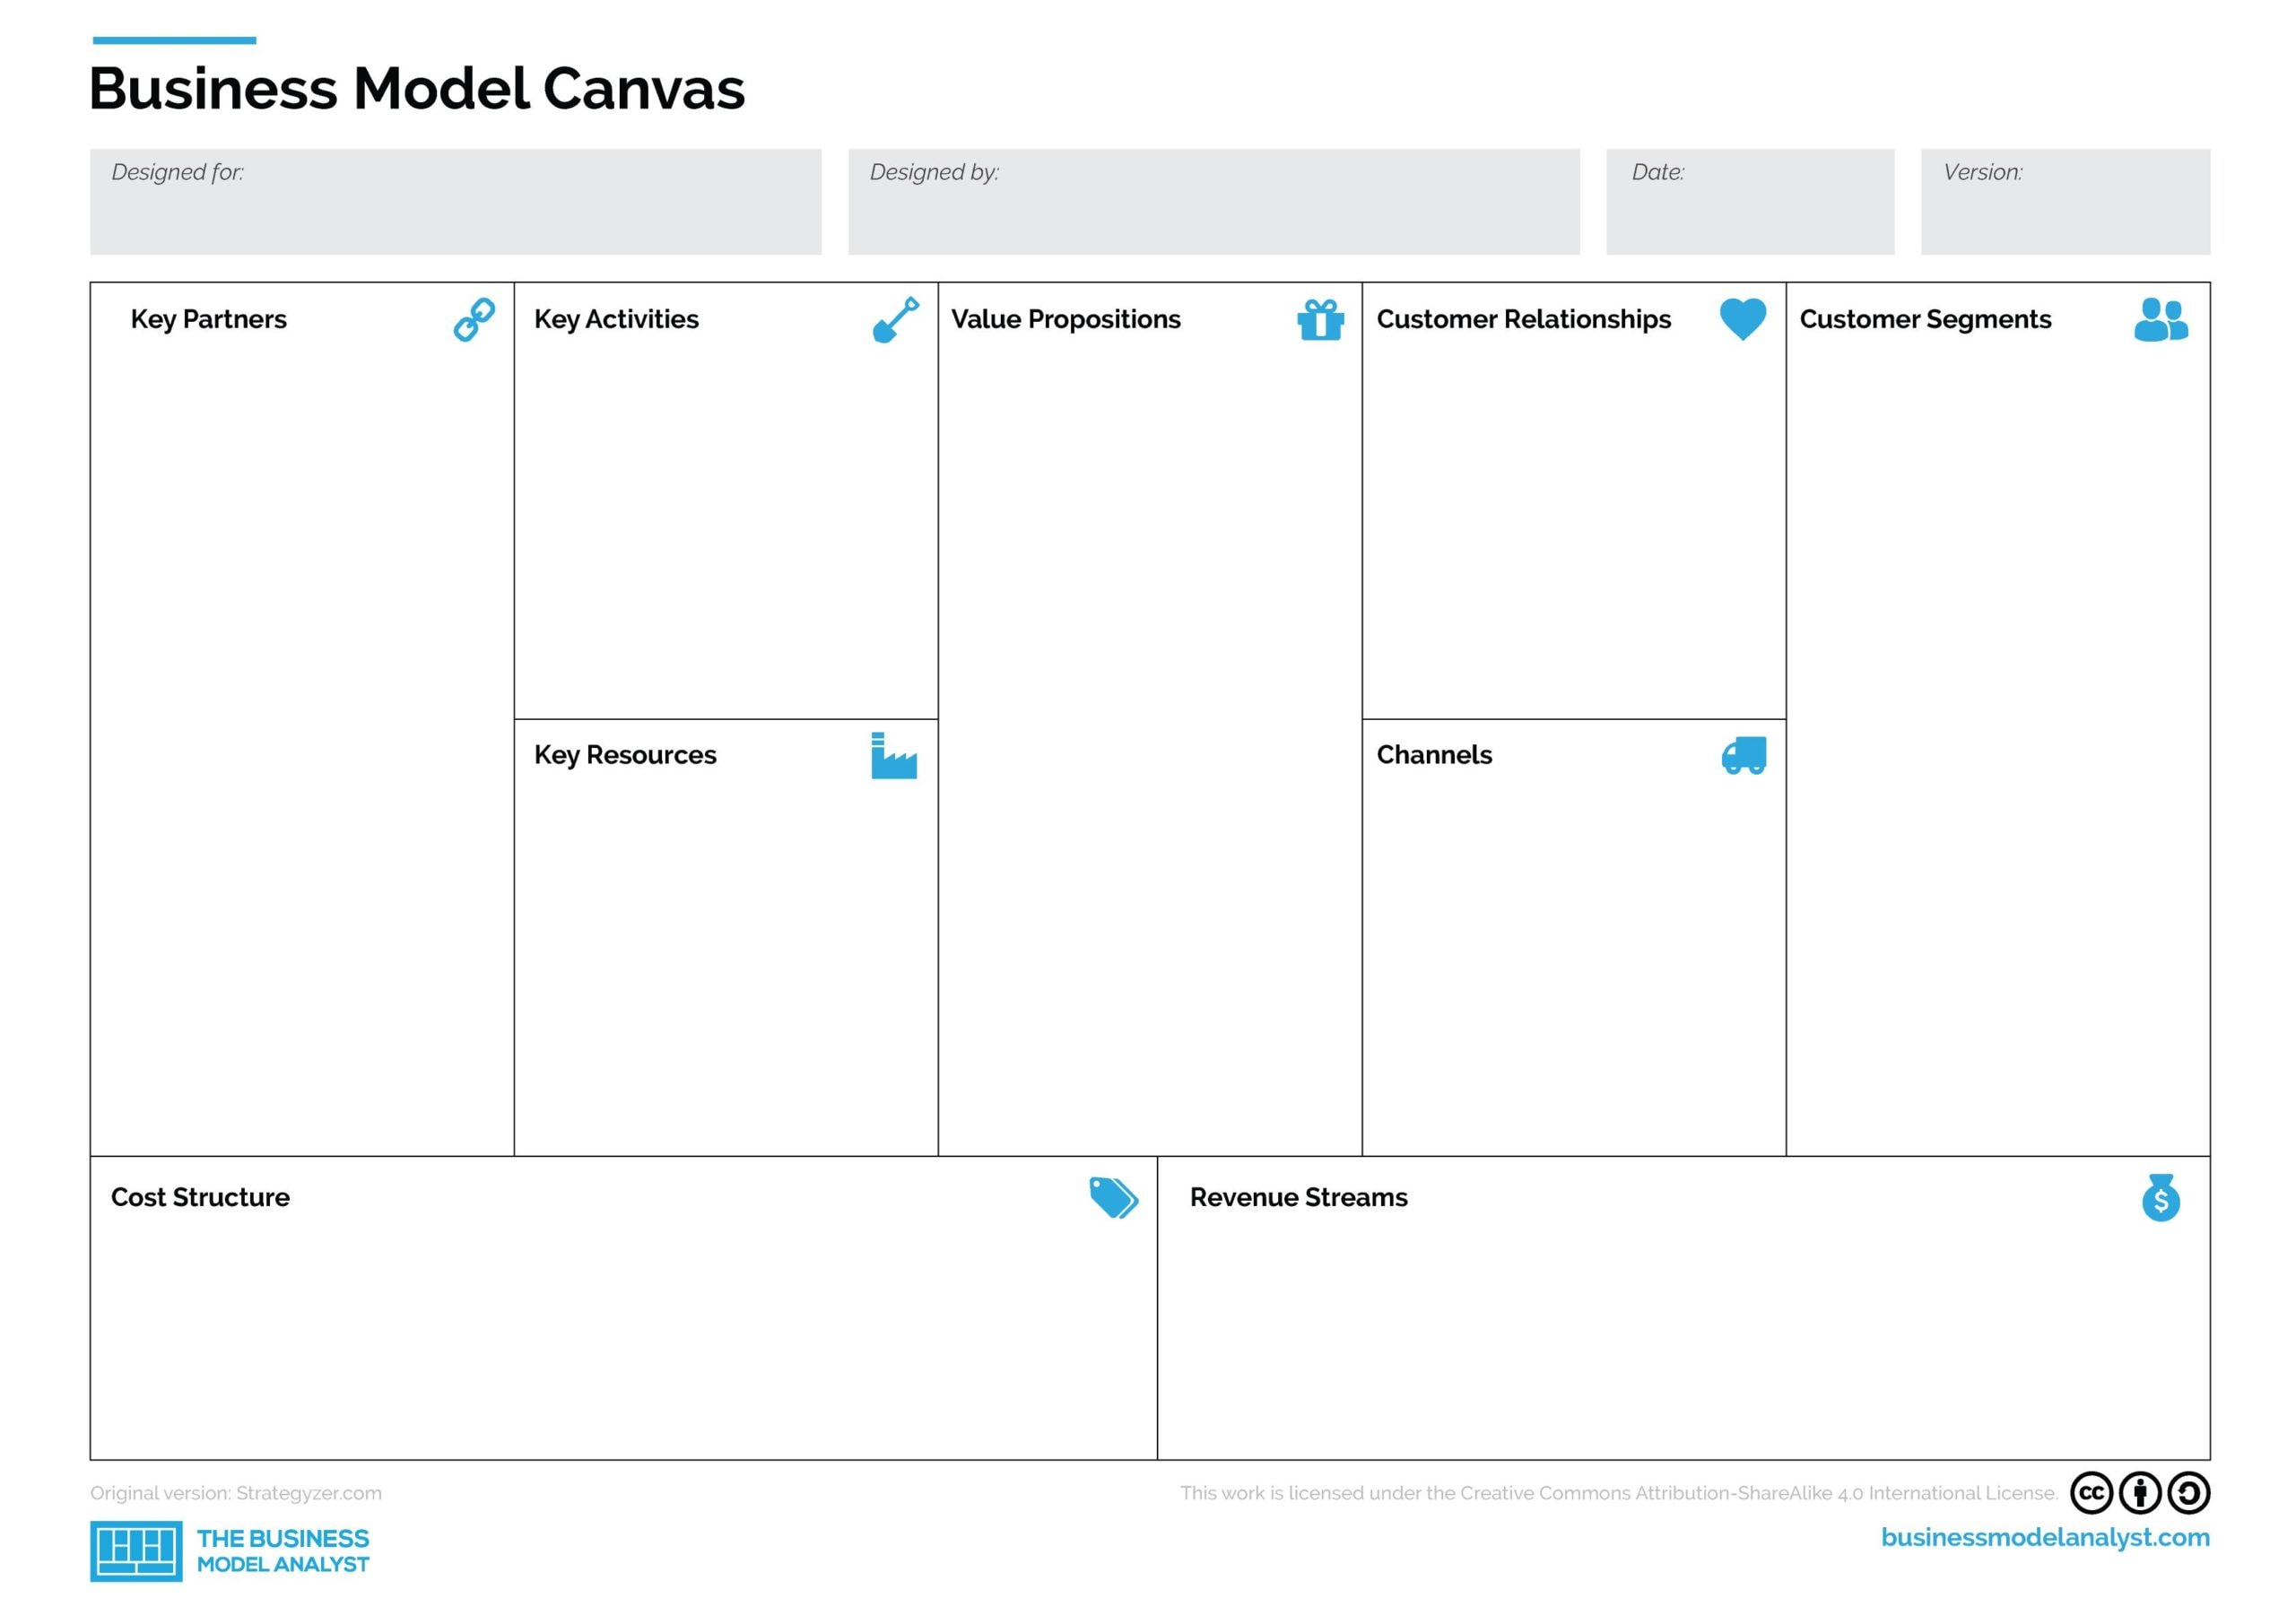 Business Model Canvas Template in PDF With Business Model Canvas Template Word